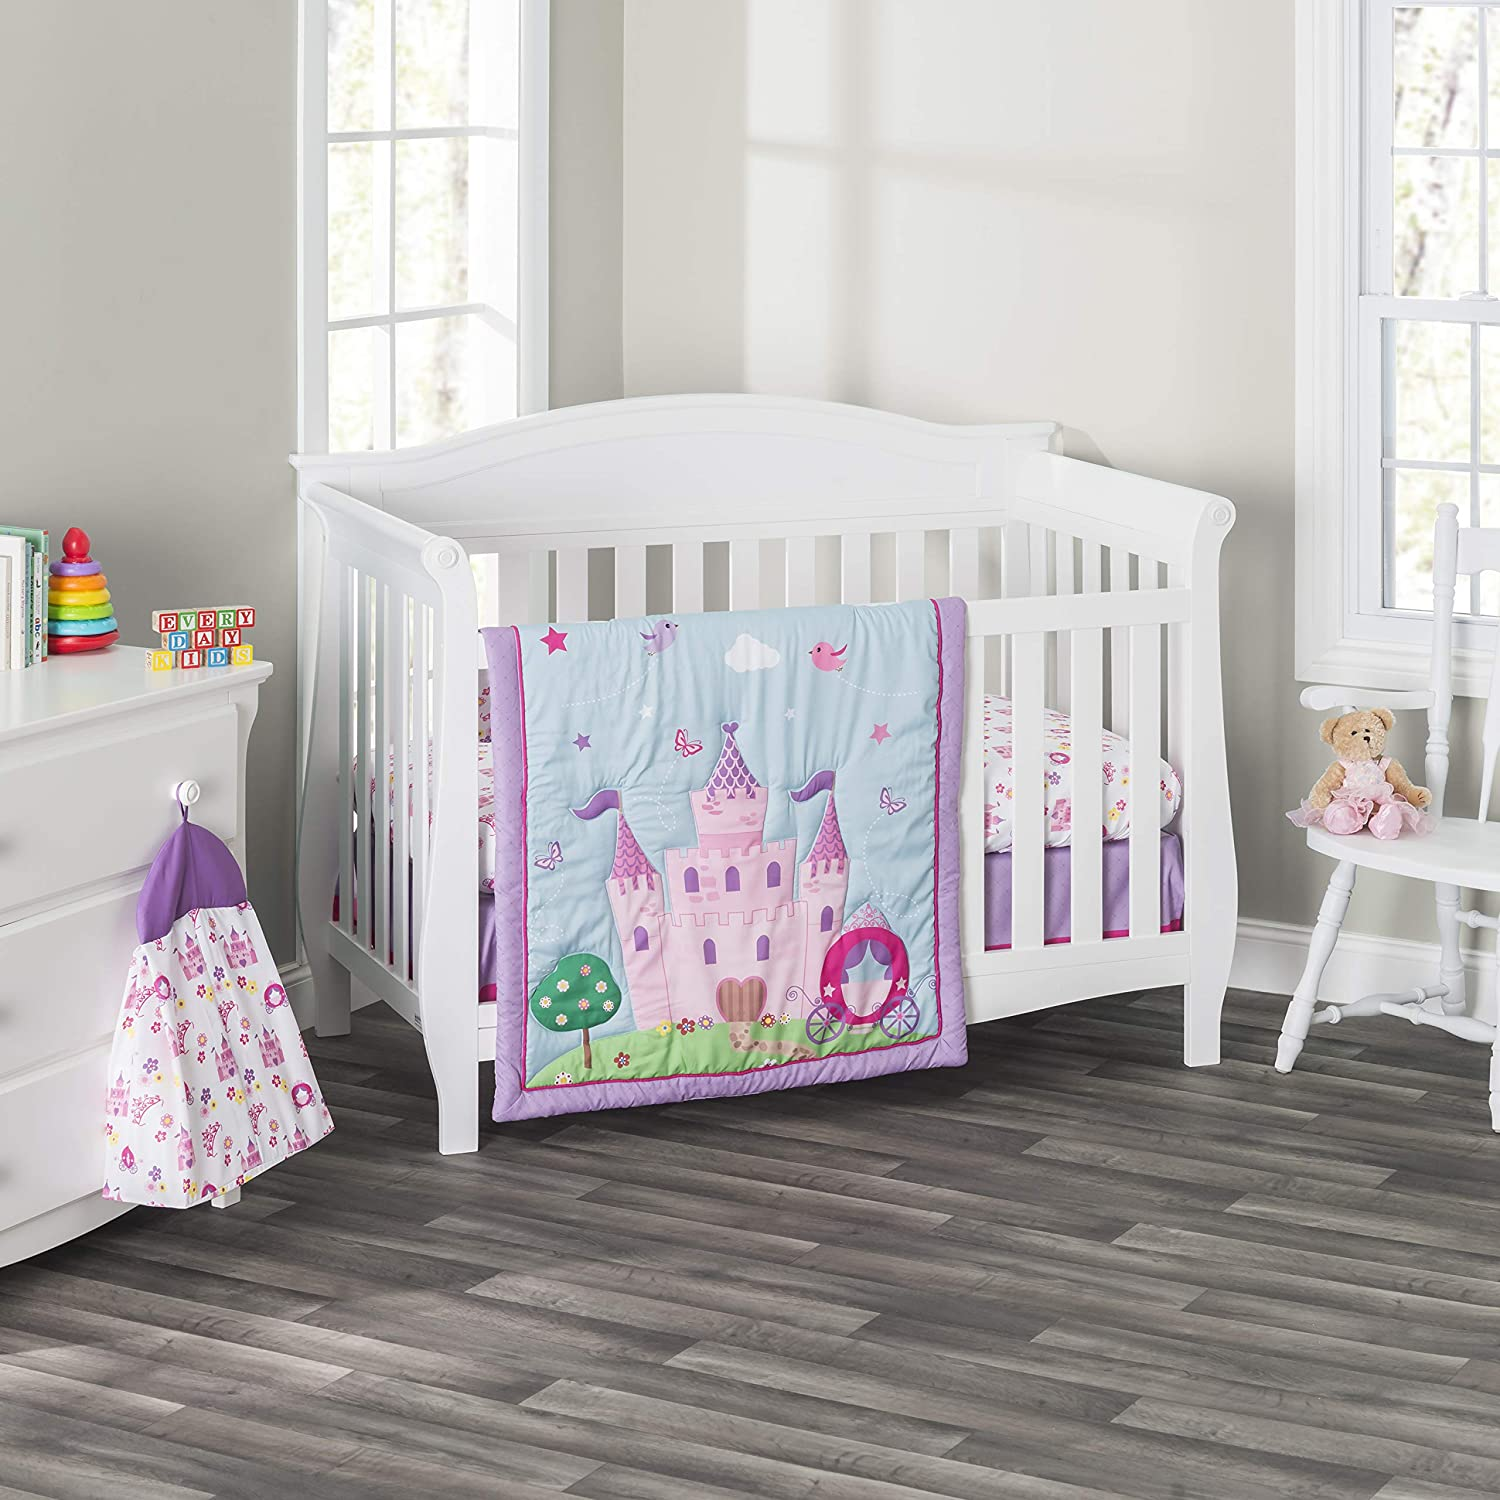 Everyday Kids 3 Piece Girls Crib Bedding Set -Princess Storyland - Includes Quilt, Fitted Sheet and Dust Ruffle - Nursery Bedding Set - Baby Crib Bedding Set